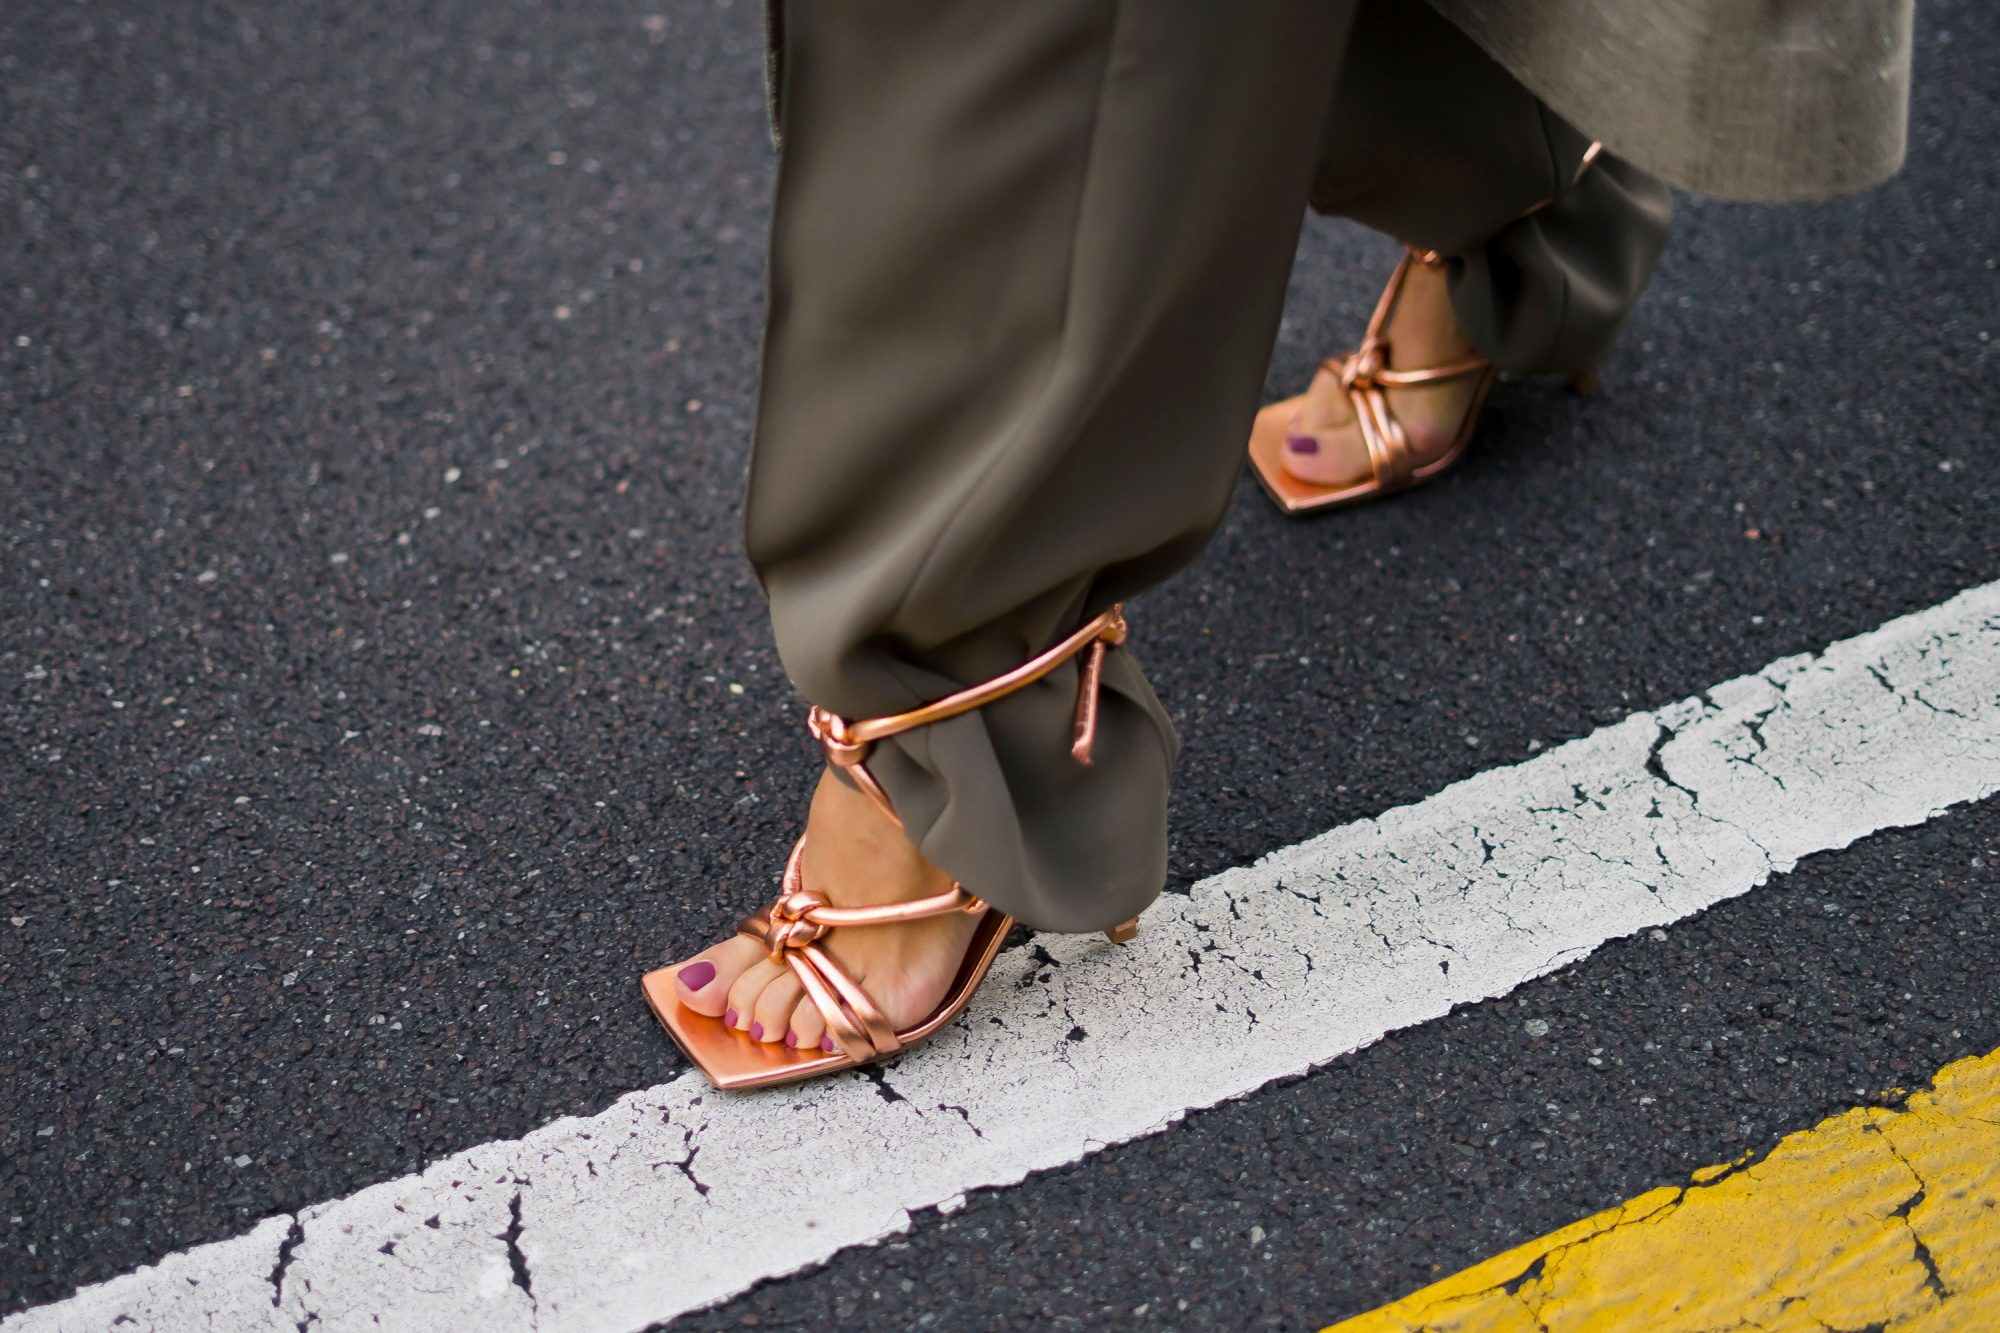 The Square Toe Sandal Trend May Be More